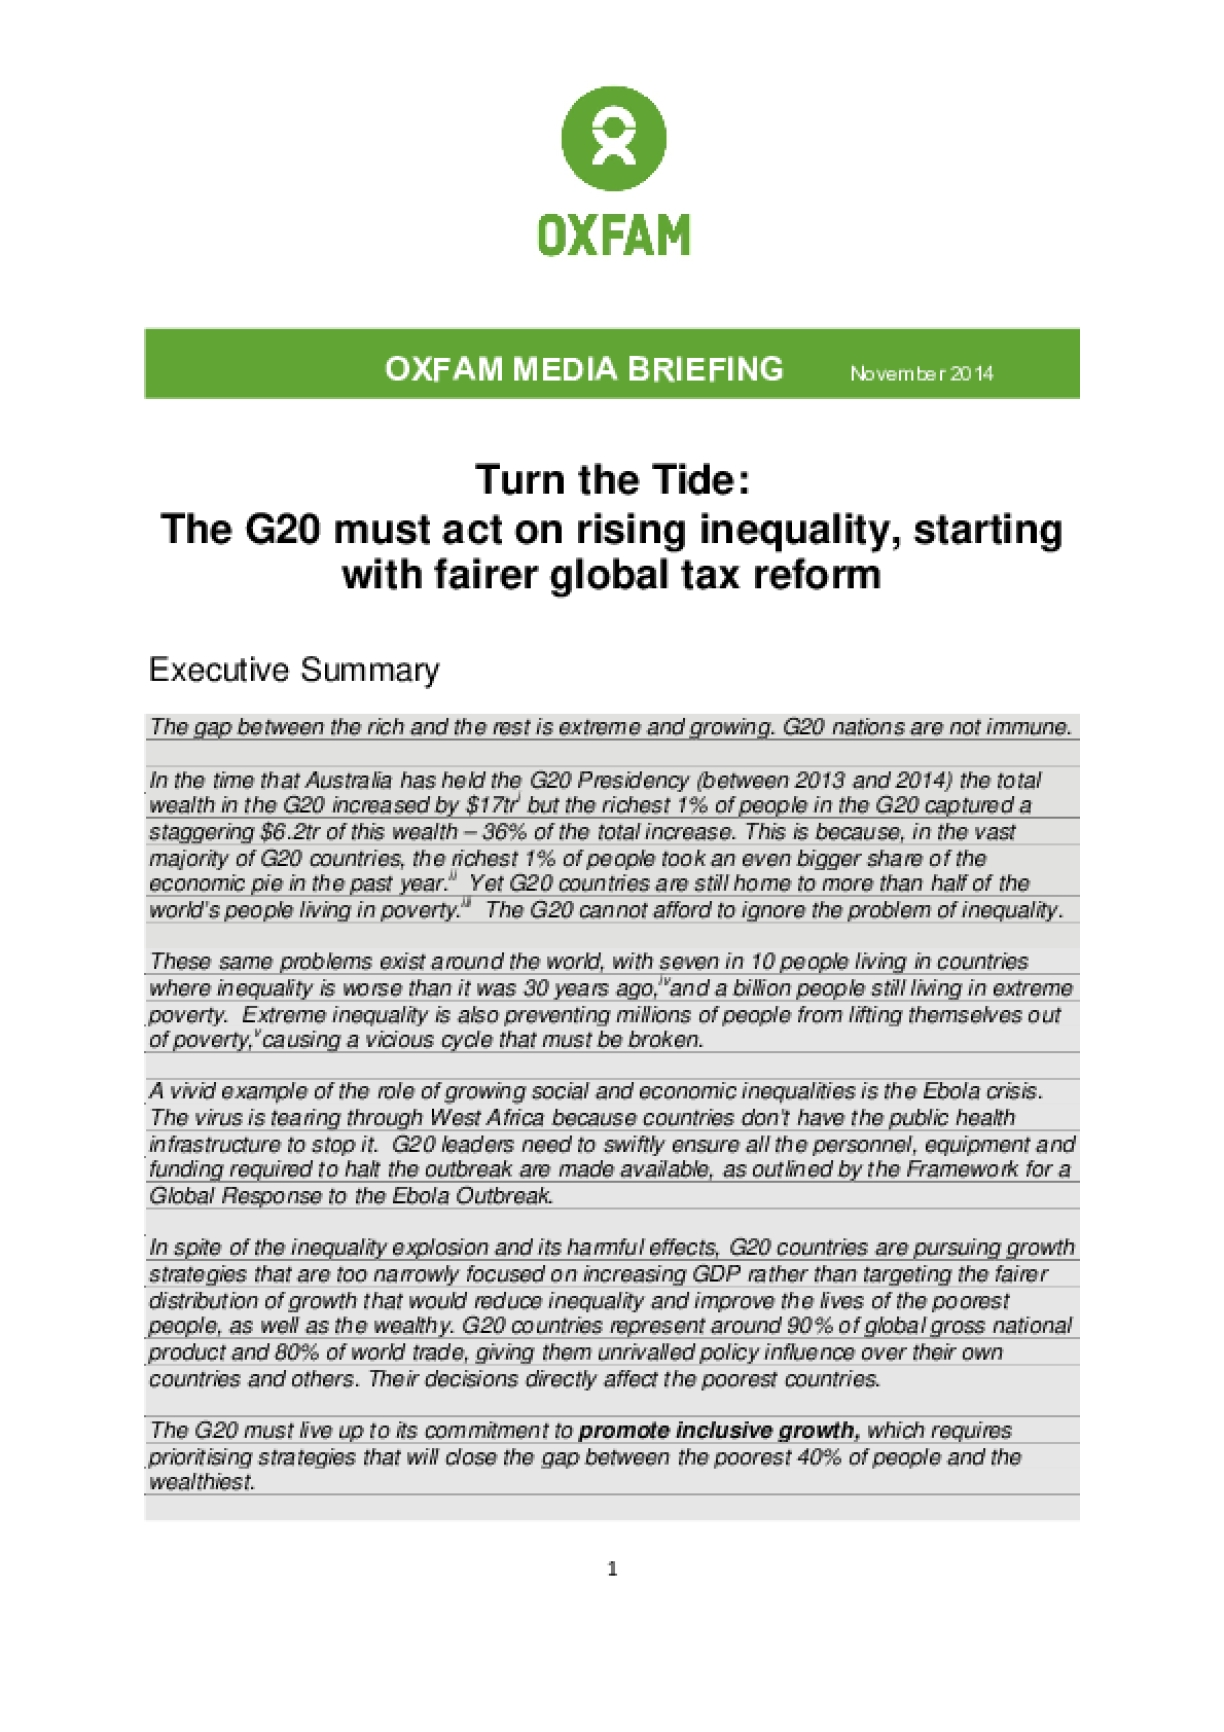 Turn the Tide: The G20 Must Act on Rising Inequality, Starting with Fairer Global Tax Reform